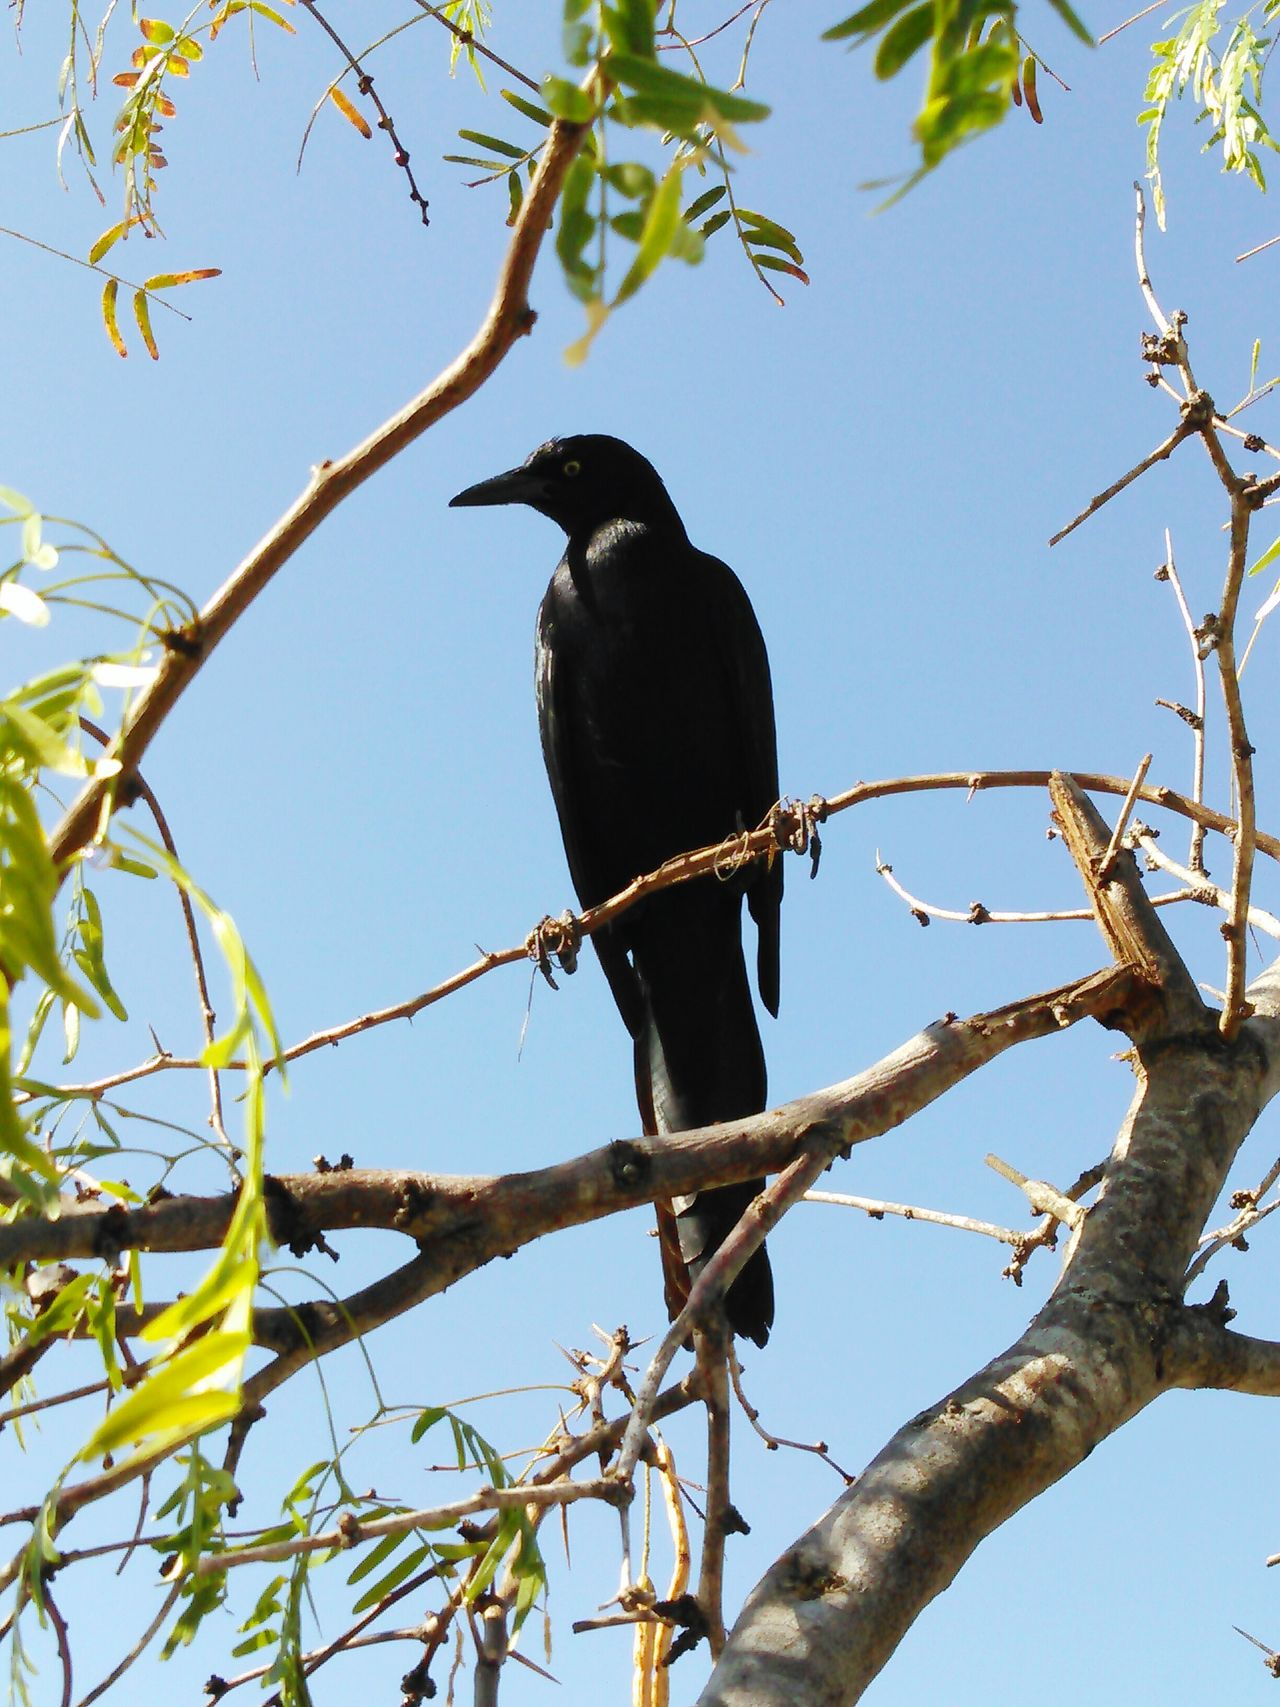 My Best Photo 2015 Captain Jack The Black Crackle Bird My Island Follower